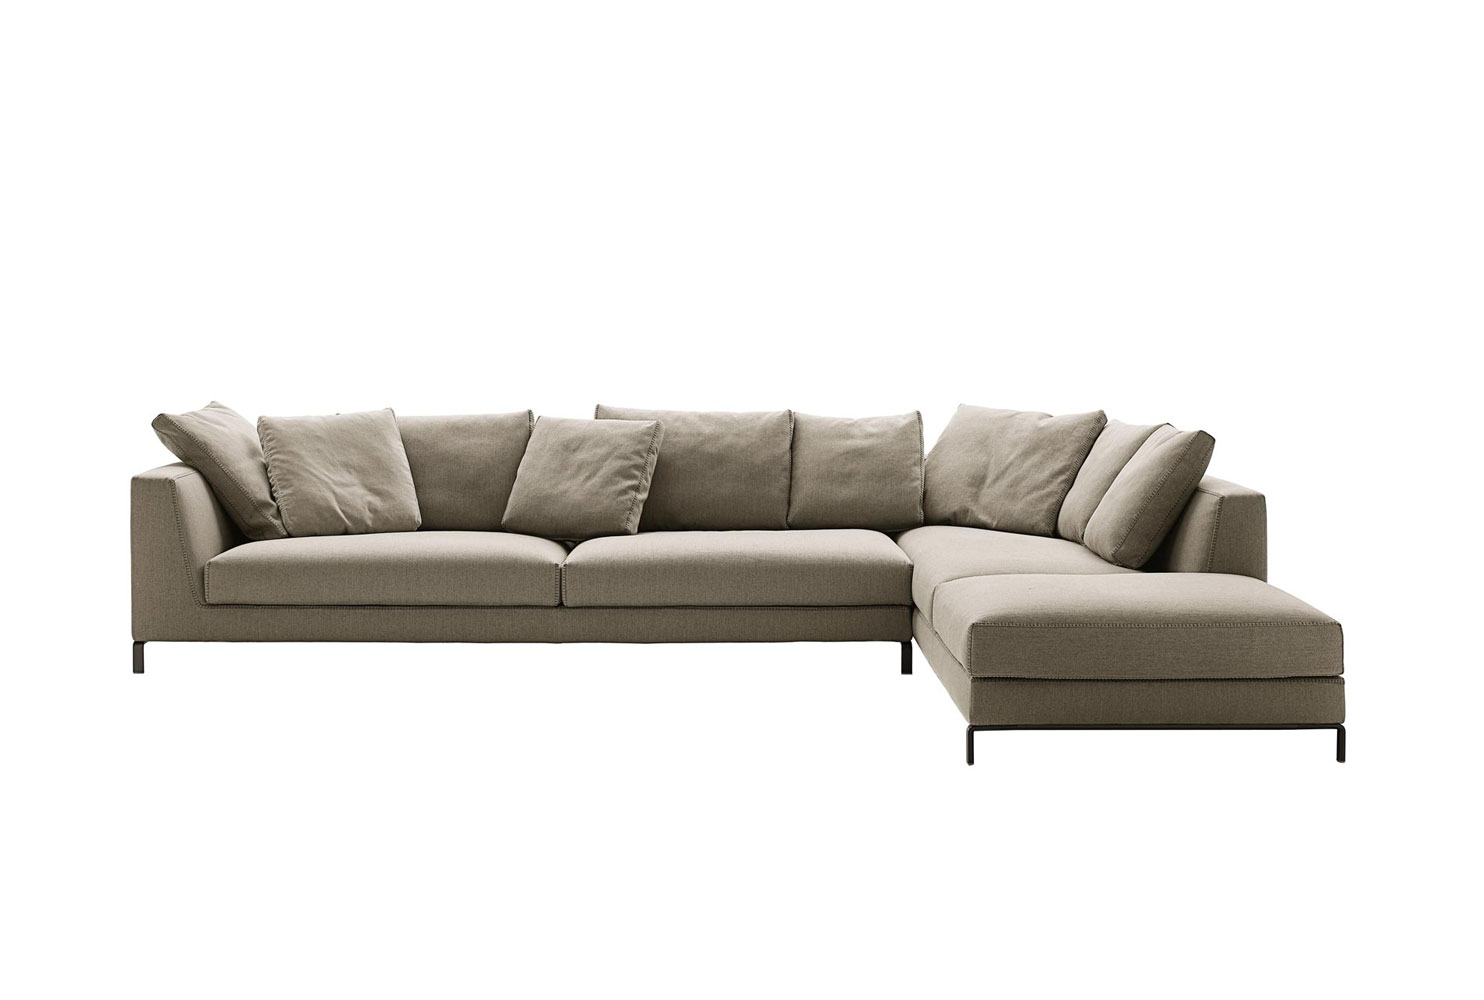 Ray b b italia download bim objects sofas for Bb itala